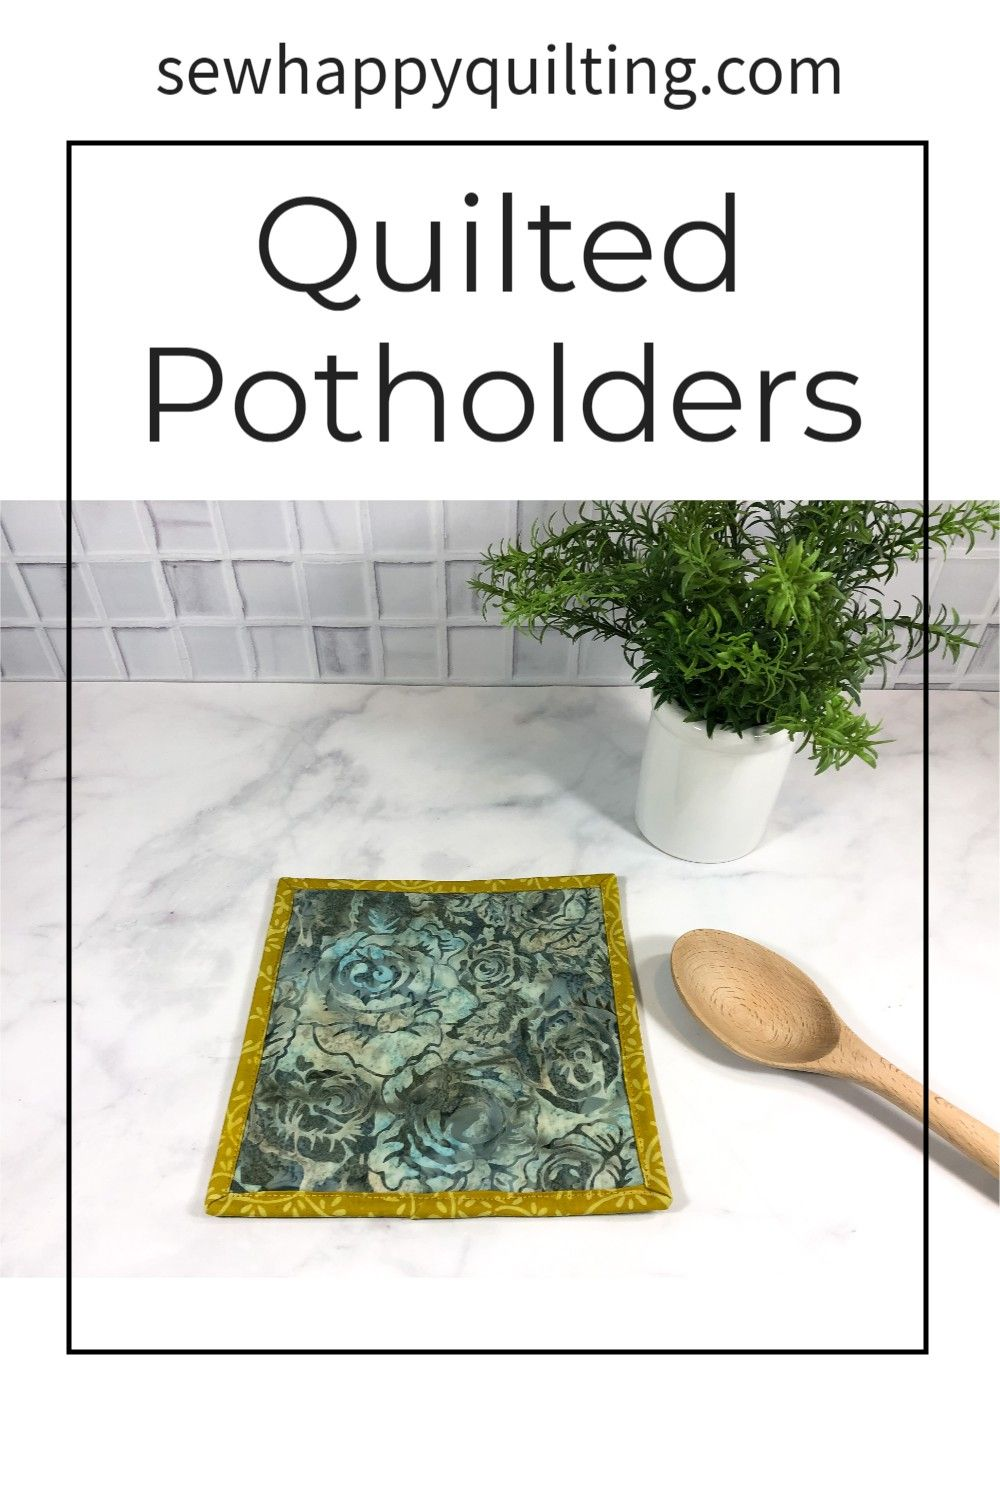 If you are in need of some new potholders that are stunningly gorgeous and practical too, come visit Sew Happy Quilting. These are made from beautiful batik cotton fabric. All of our trivets are insulated, handmade, unique and washable. Pot holders make a great gift for grandma or anyone who loves spending time in their kitchen. #kitchenaccessory #potholder #trivet #handmadedecor #grandmagift #kitchenislanddecor #hotpad #batik